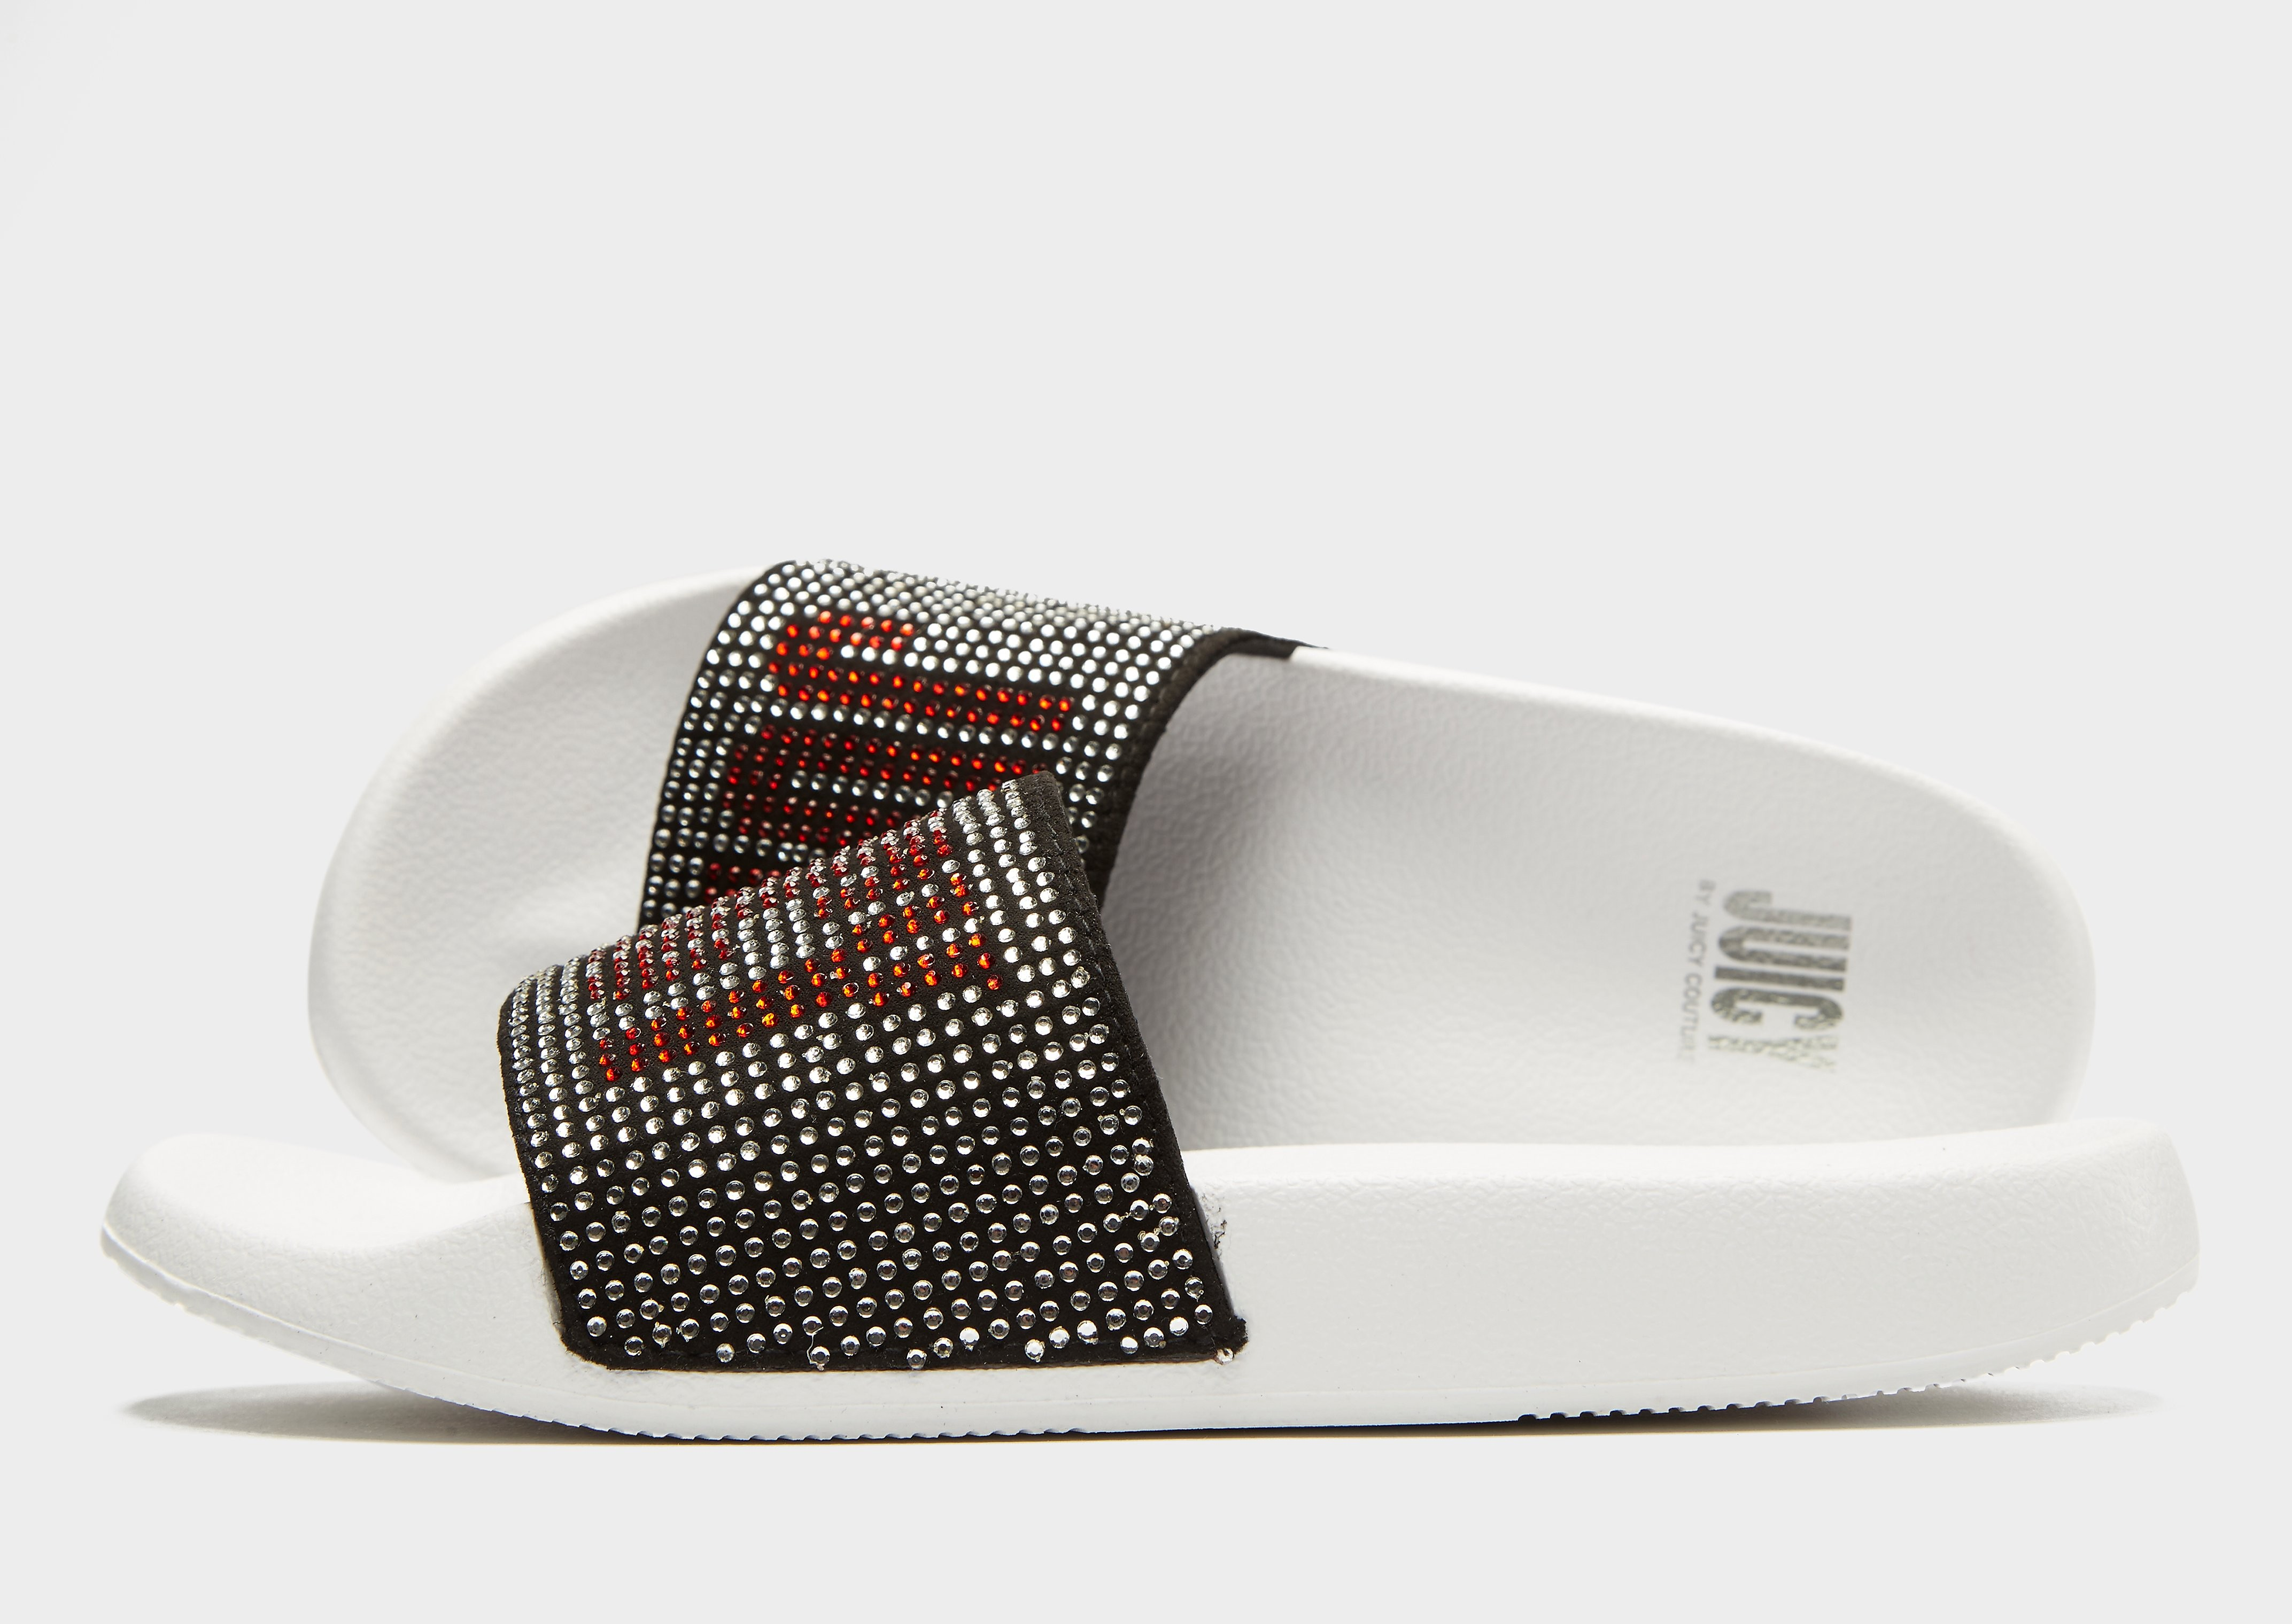 Juicy by Juicy Couture Marian Slides Women's